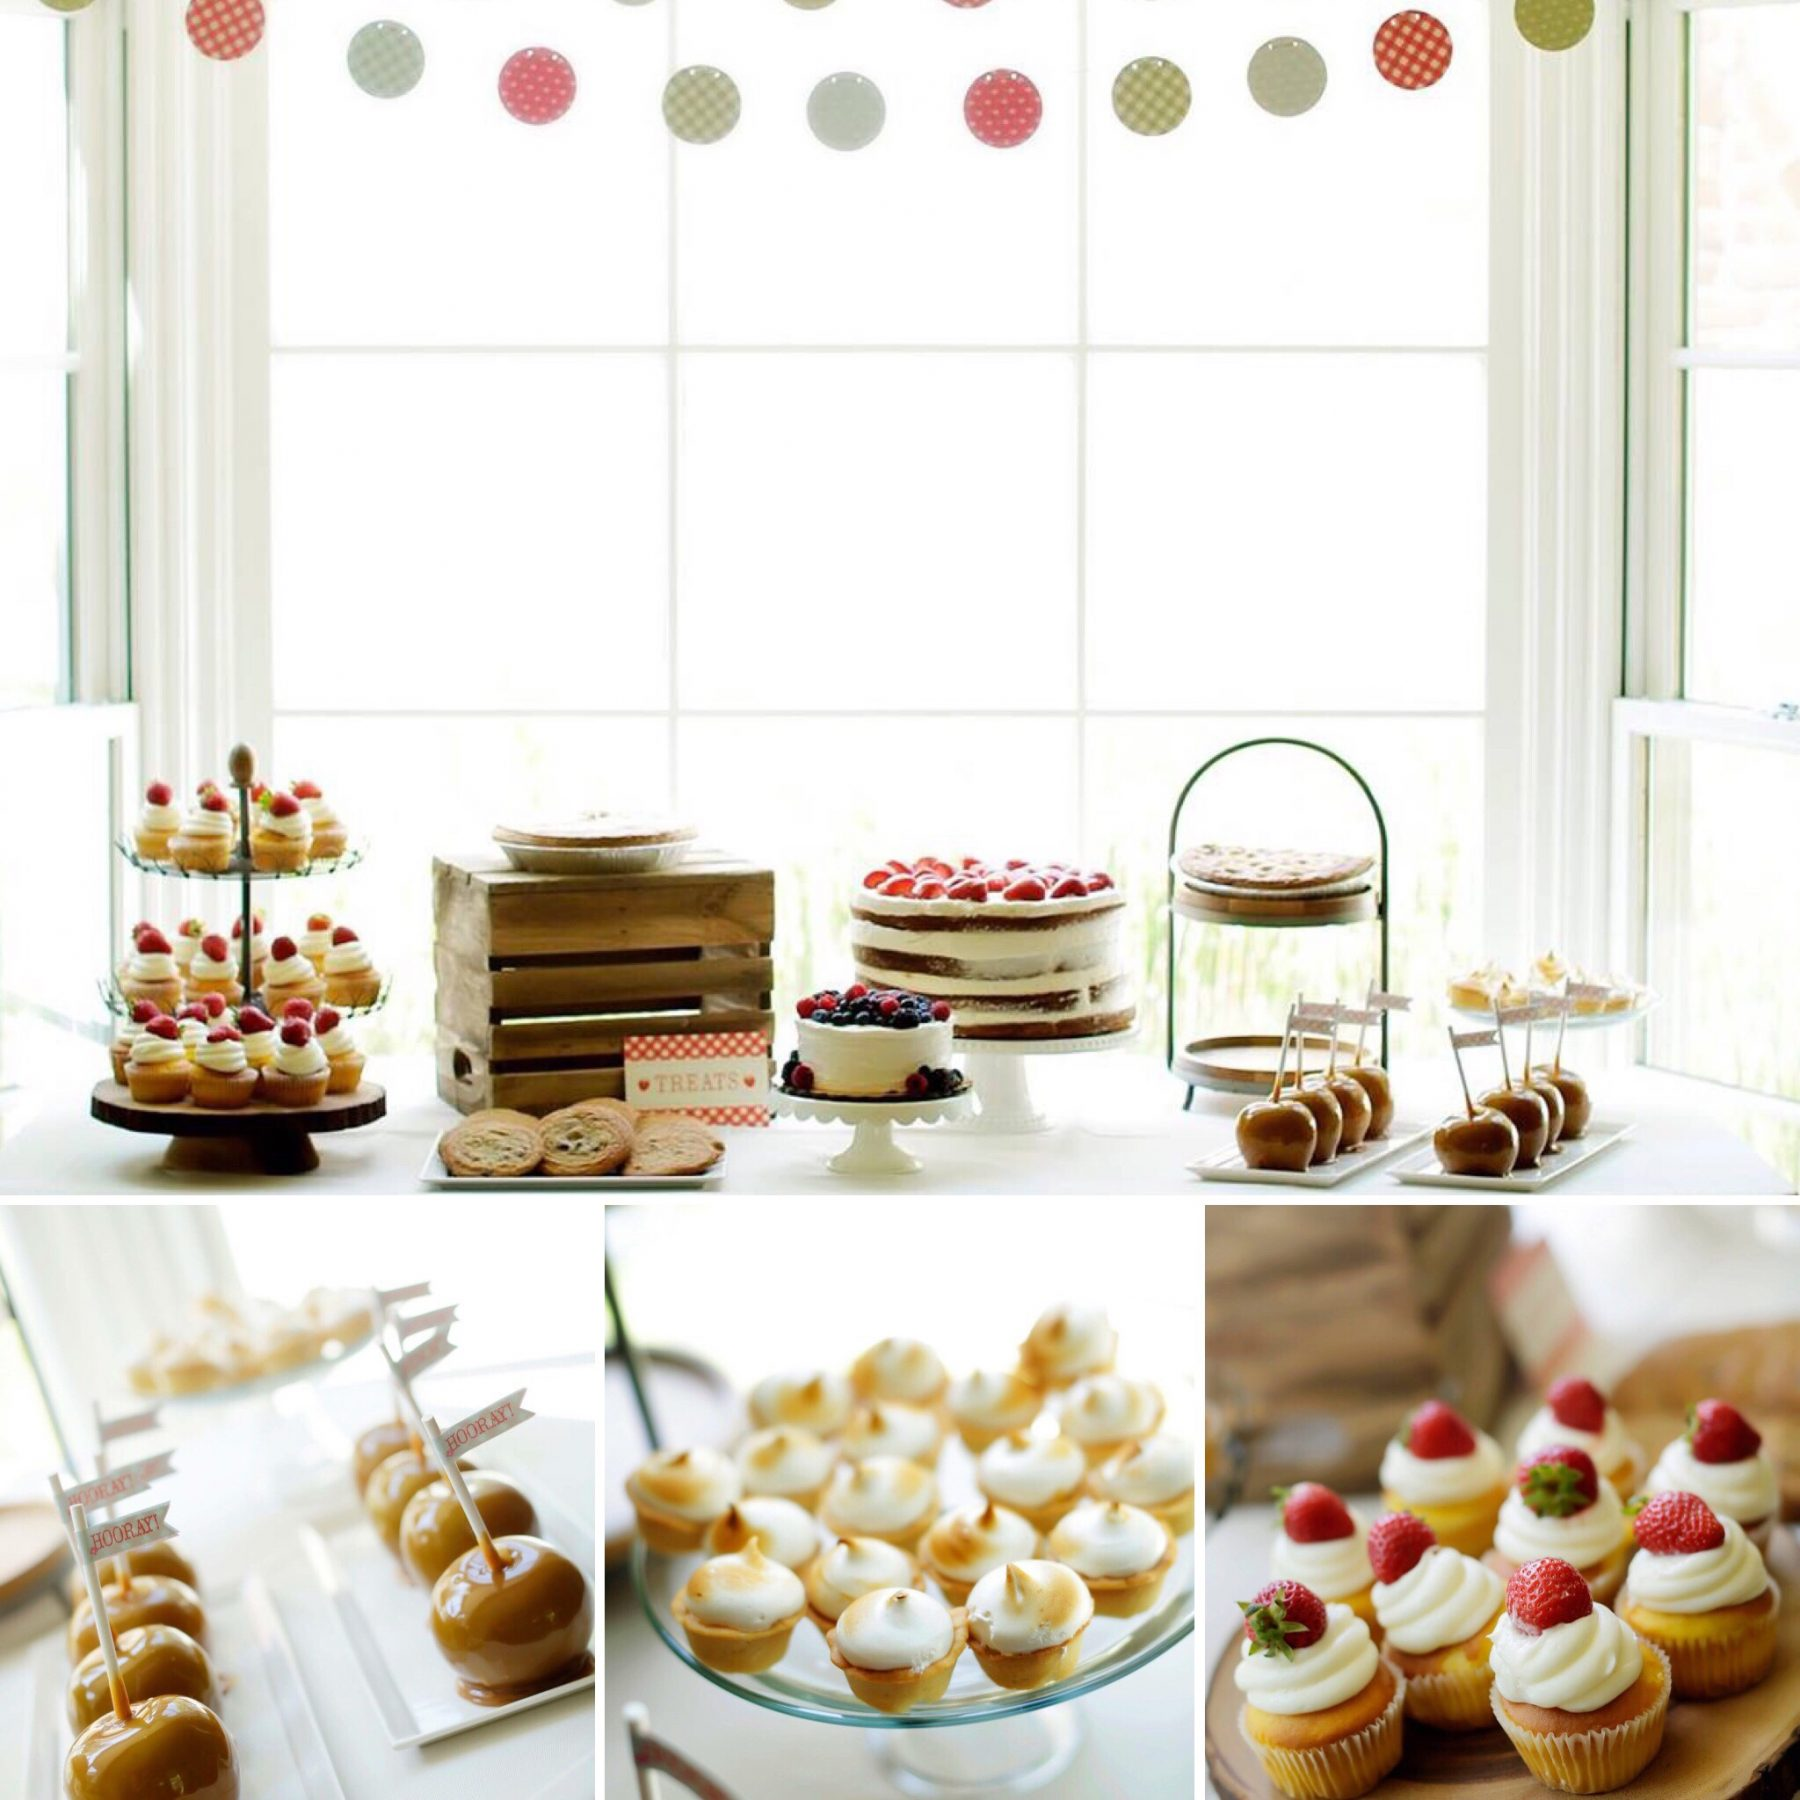 Farmers Market Birthday Party Ideas and Inspo Pics Dessert Table